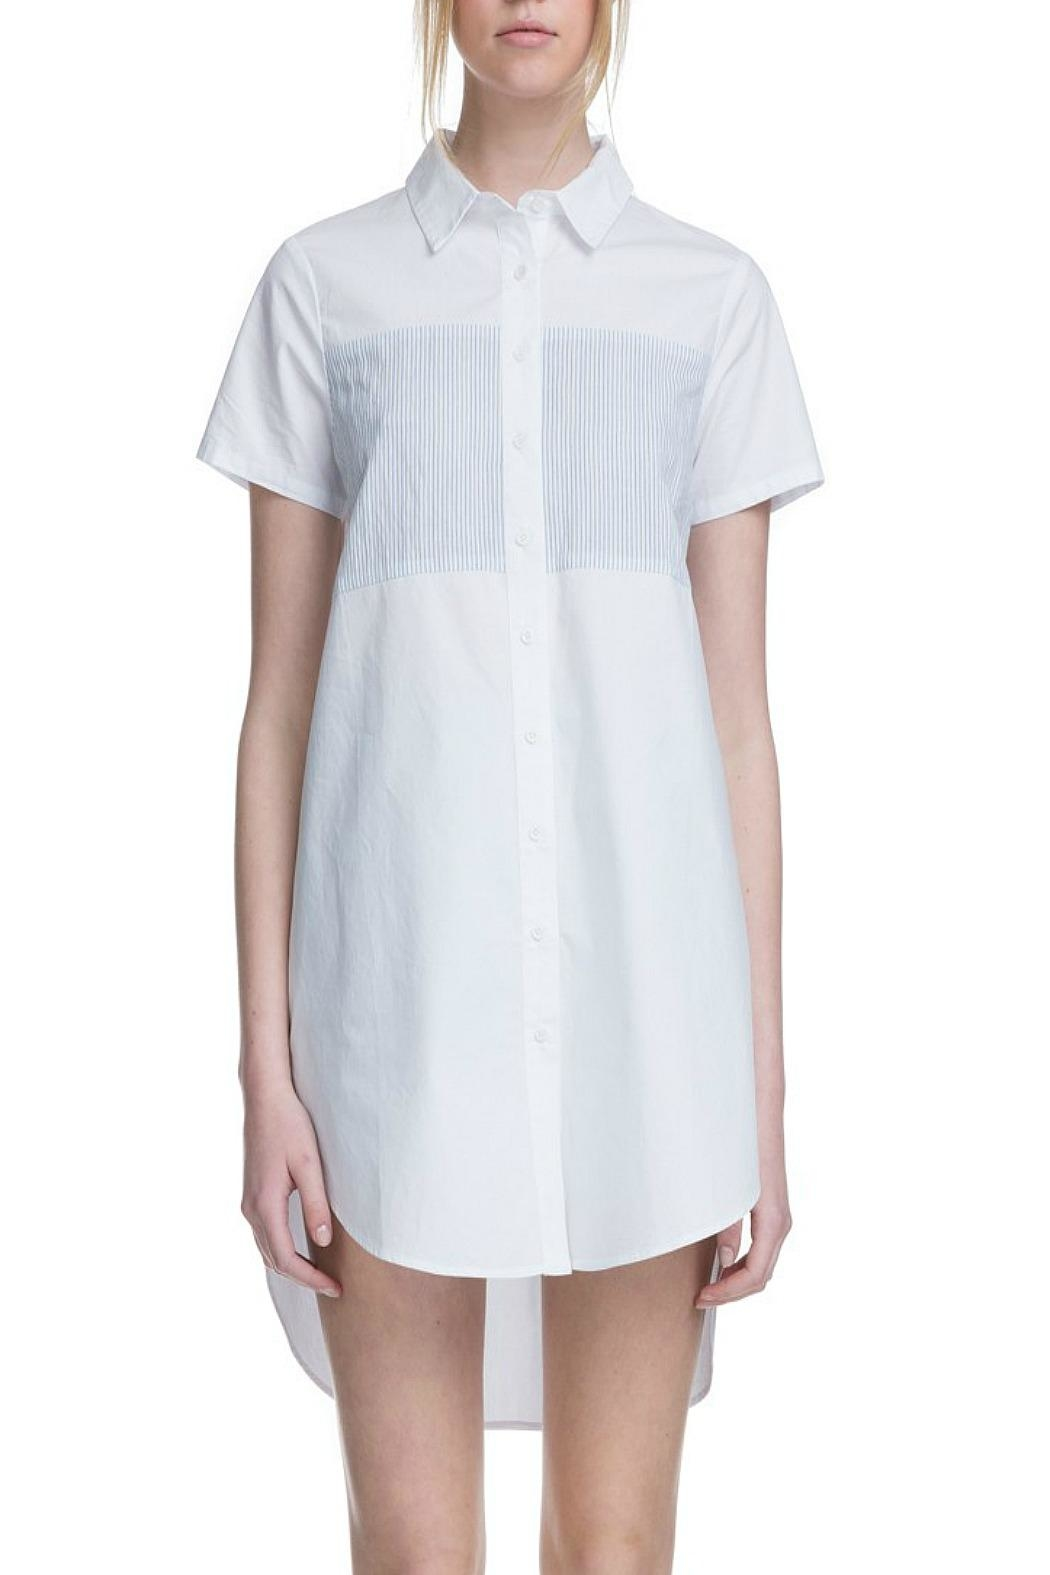 After Market White Yoke Shirtdress - Main Image